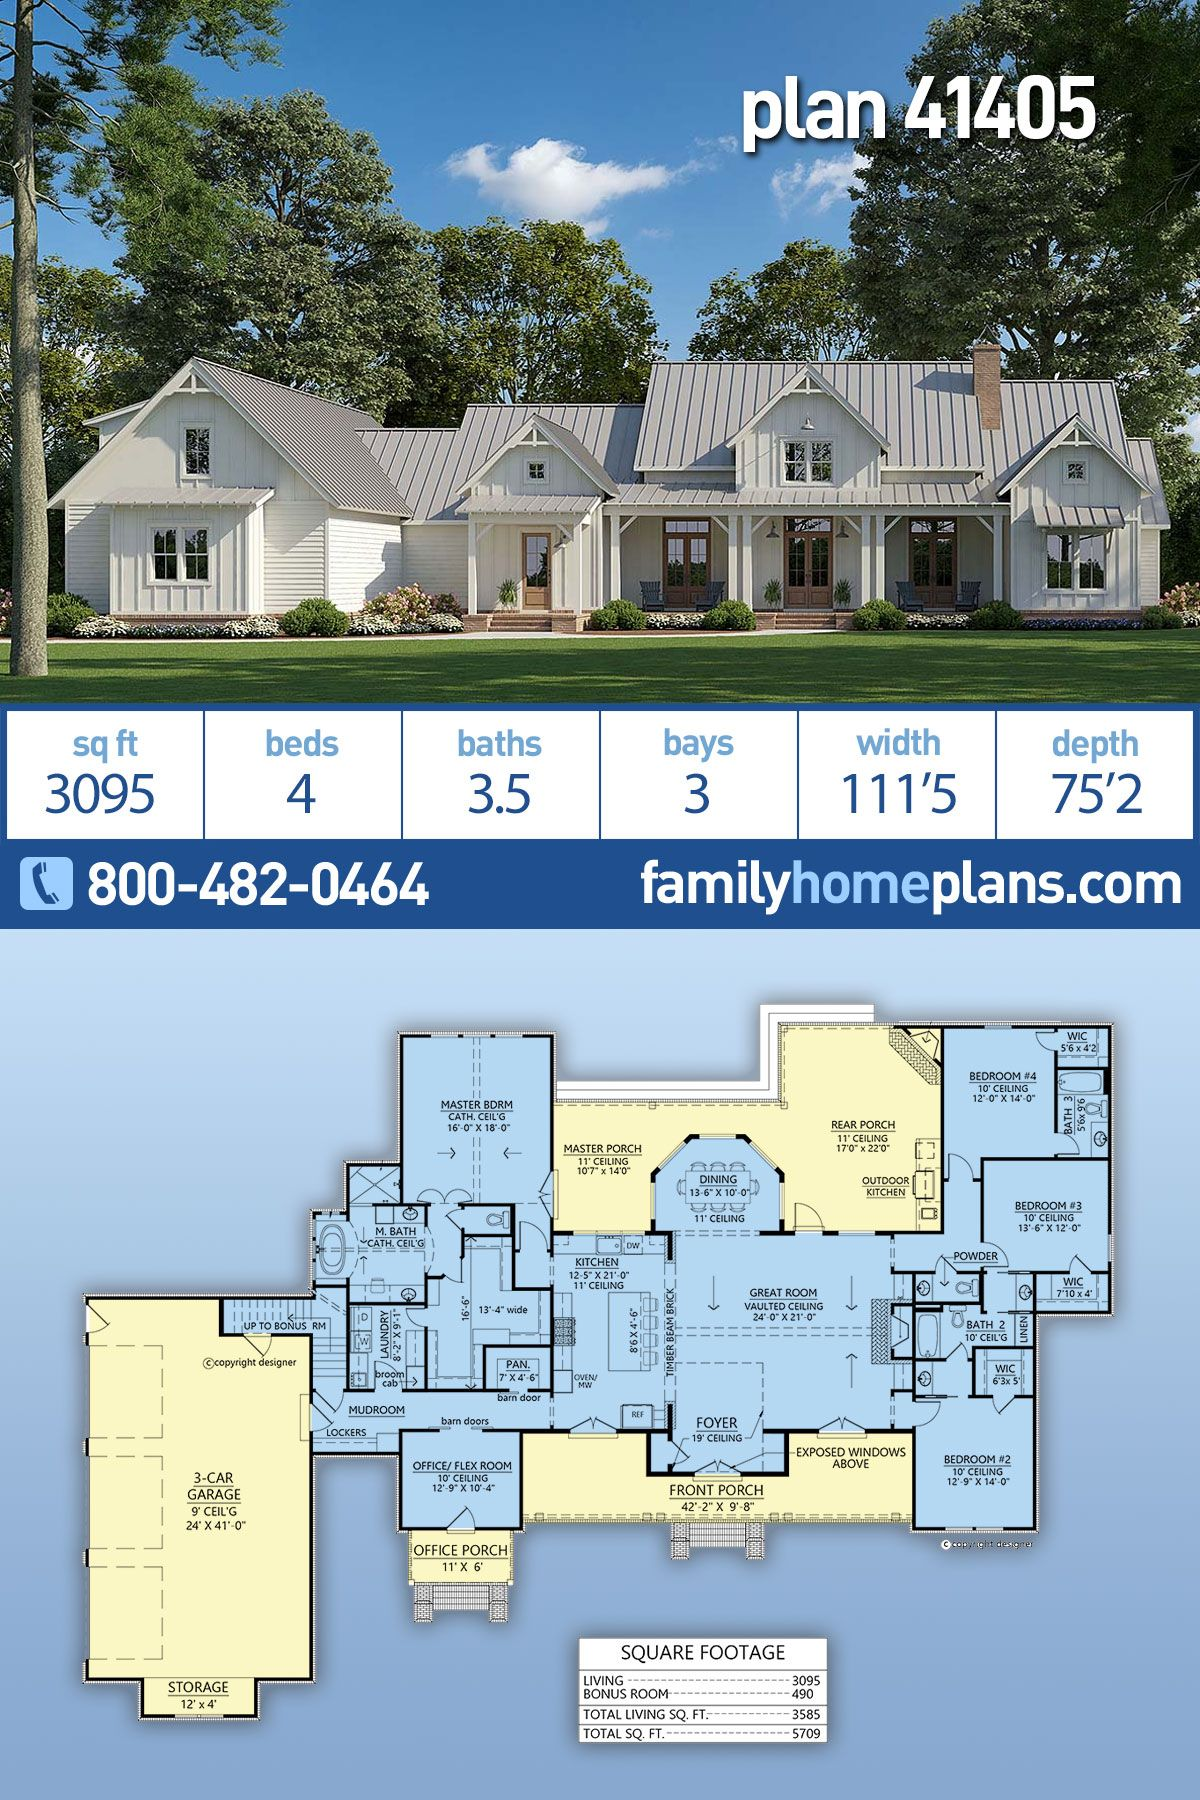 Modern Farmhouse Plan #41405 NEW House Plan with Huge Potential – 3100 sq ft, 4 beds and 3.5 Baths – ABM